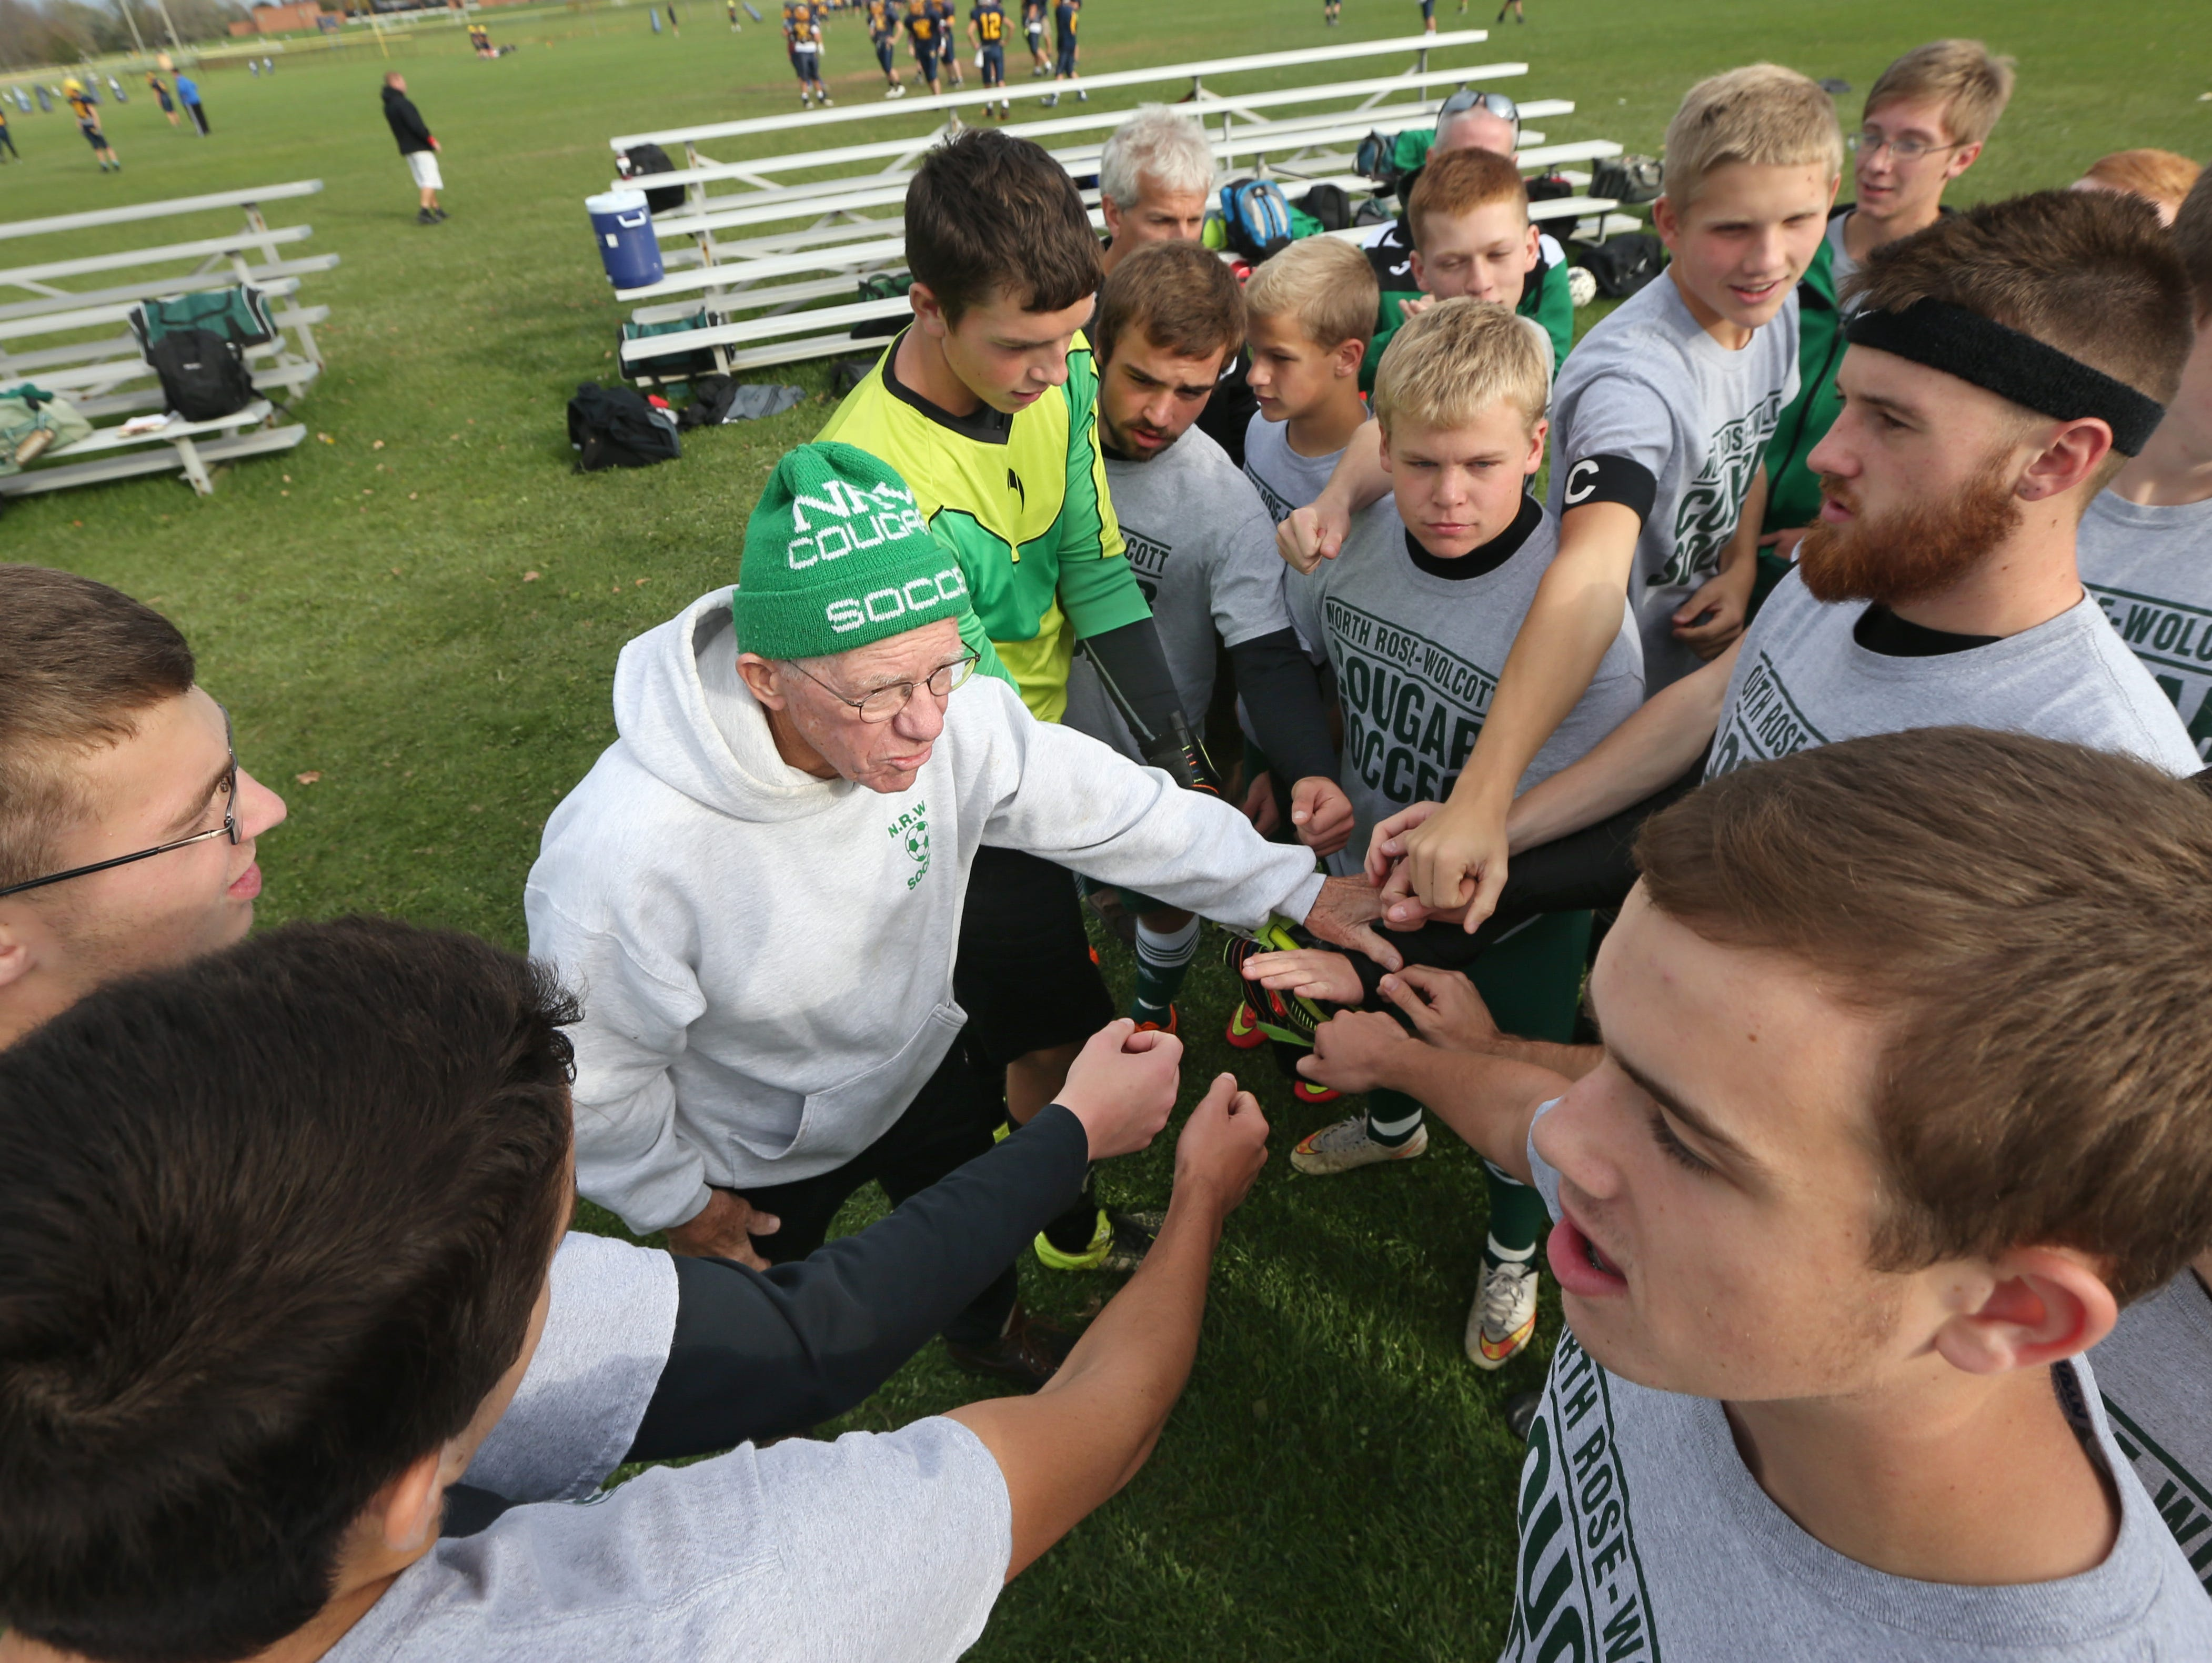 """All hands join in with head coach Gordon """"Scotty"""" Martin as he gives final instructions to his North Rose-Wolcott boys varsity soccer team before a scrimmage at Wayne Central Tuesday, Oct. 20, 2015 in Ontario. After 44 years of coaching, Martin is retiring at the end of the season."""